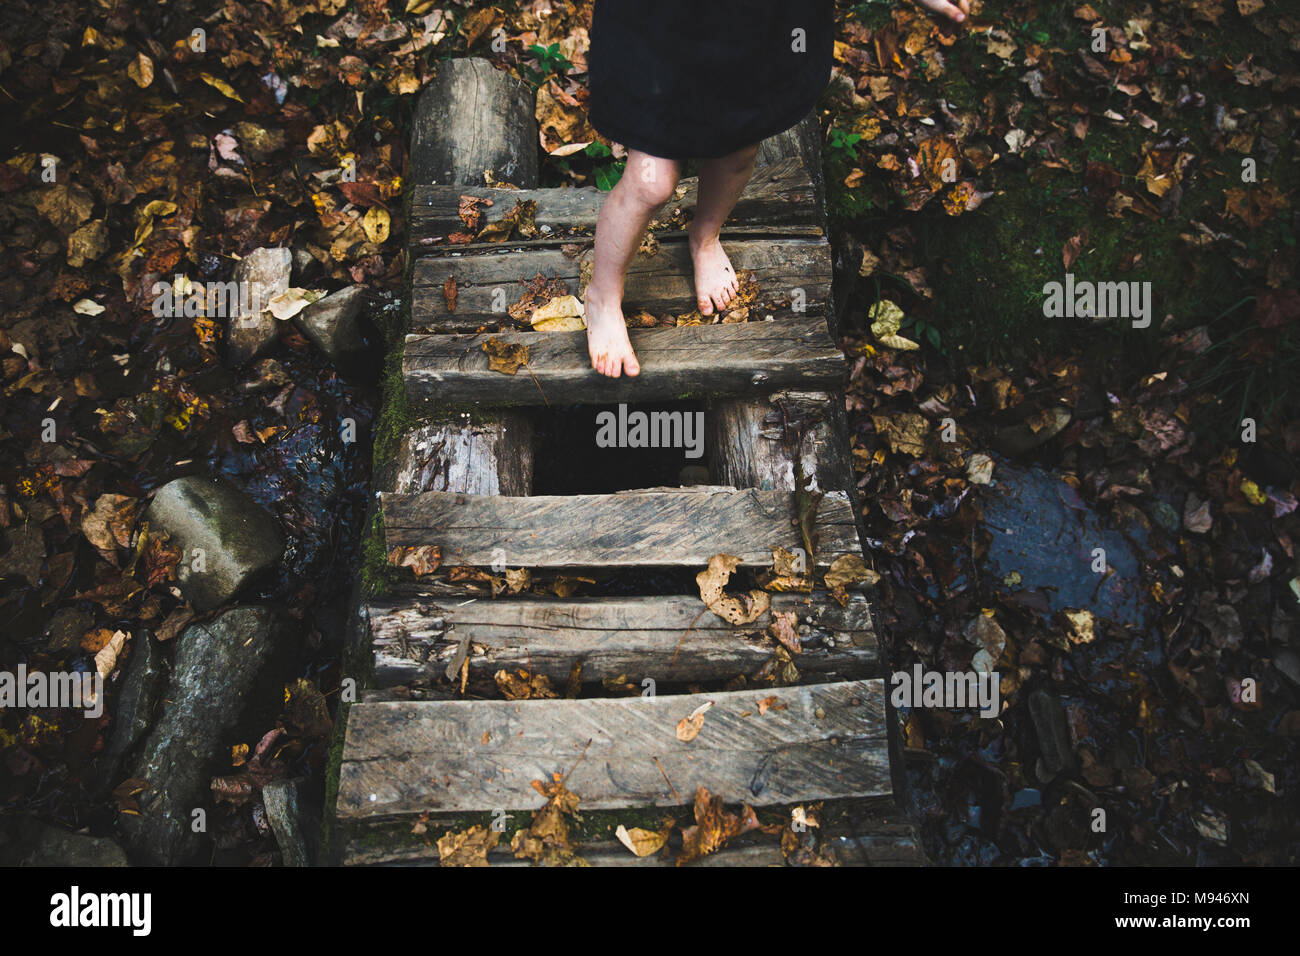 Girl crossing small wooden bridge - Stock Image